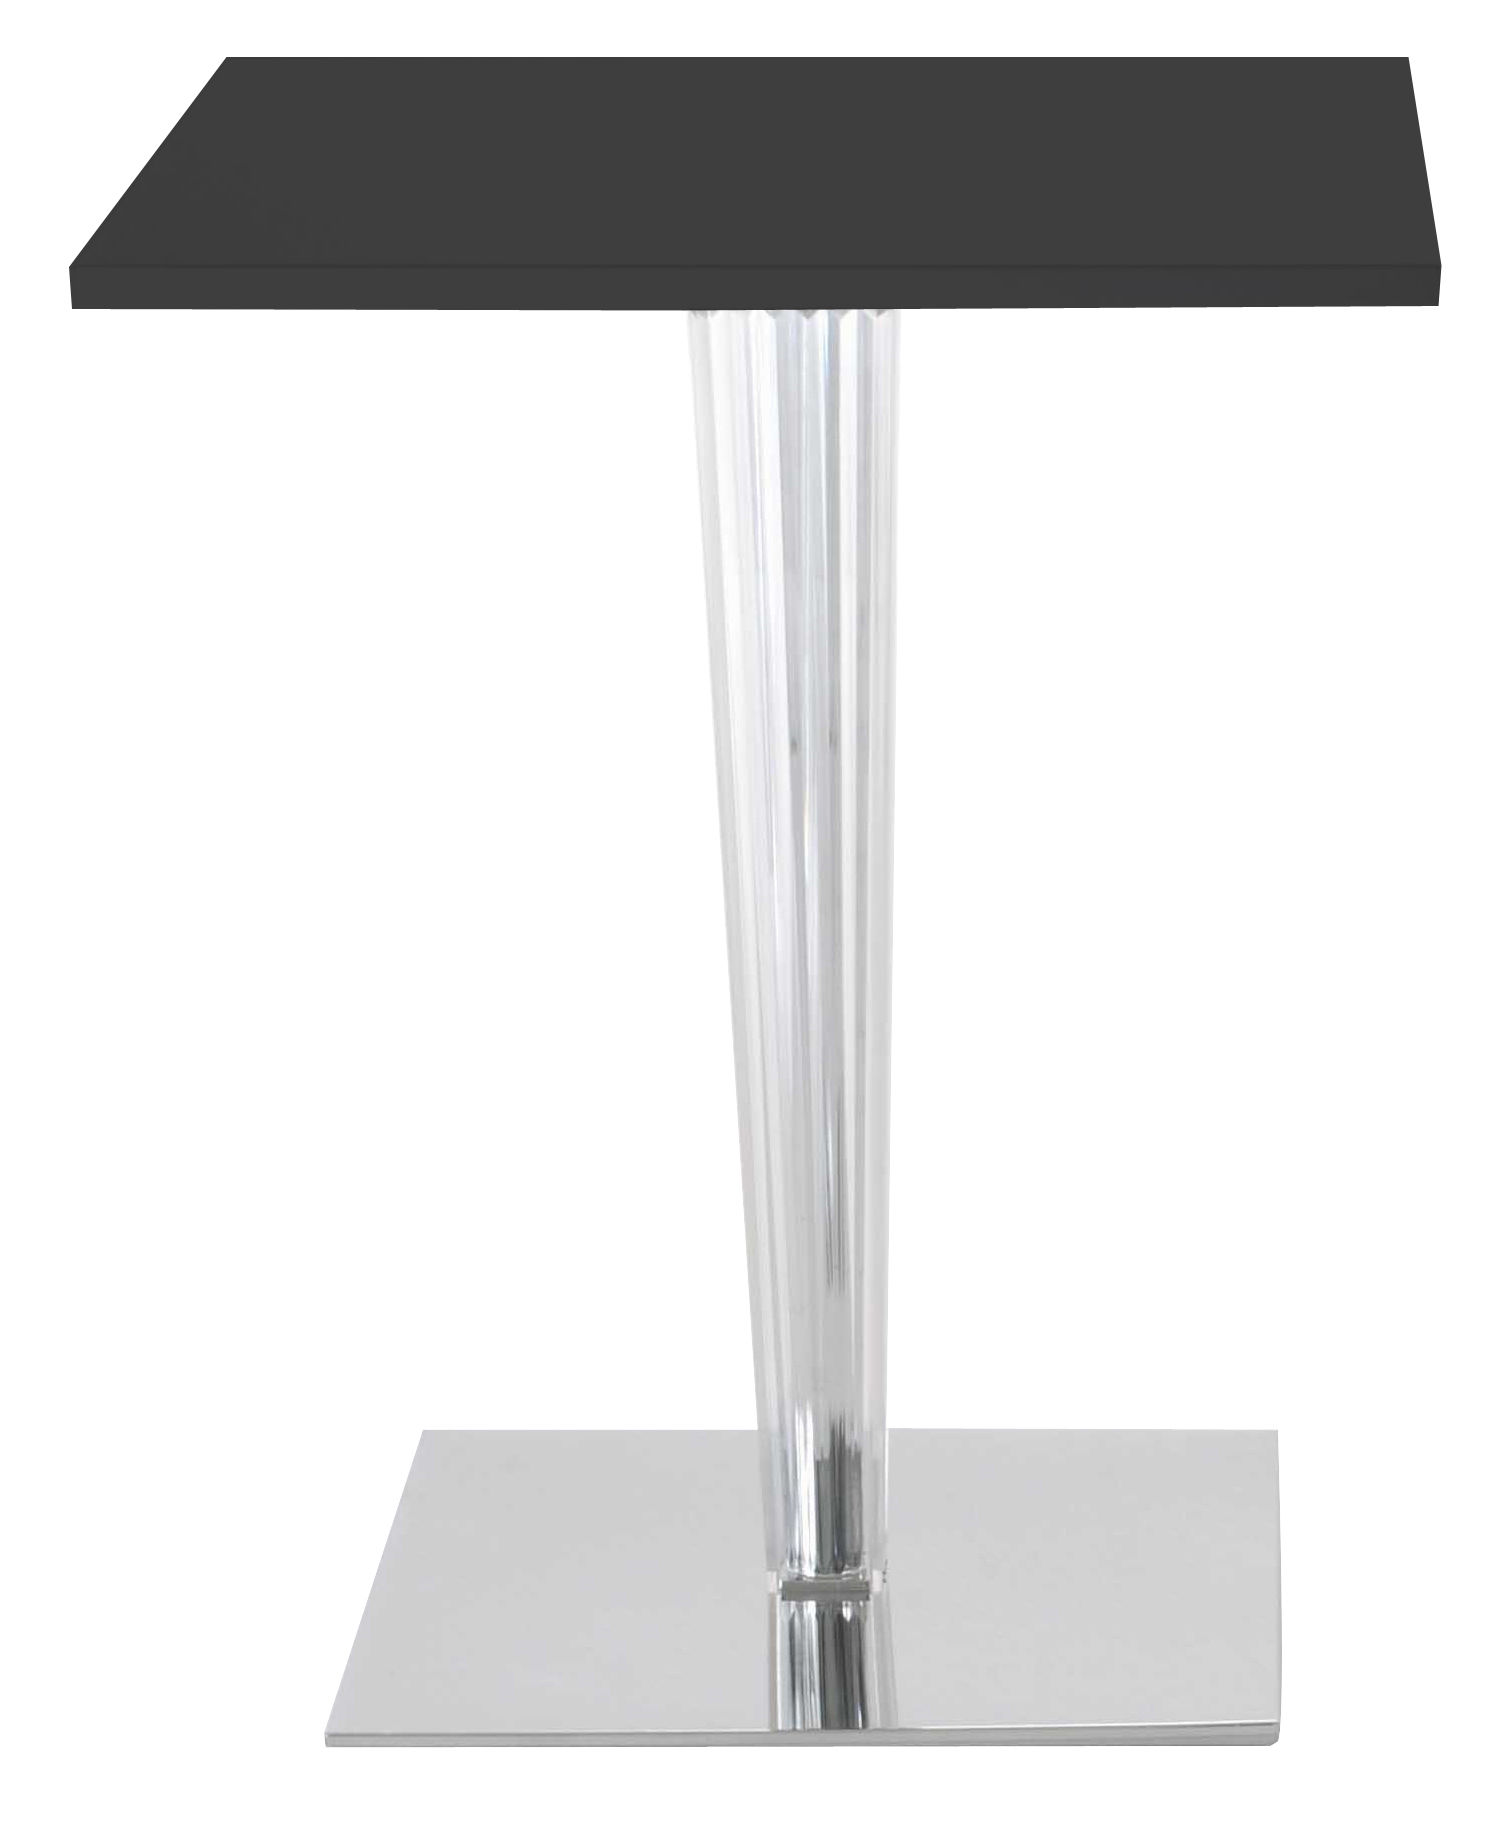 Furniture - Dining Tables - Top Top Square table - Laminated square table top by Kartell - Black/ square leg - Laminate, PMMA, Varnished aluminium